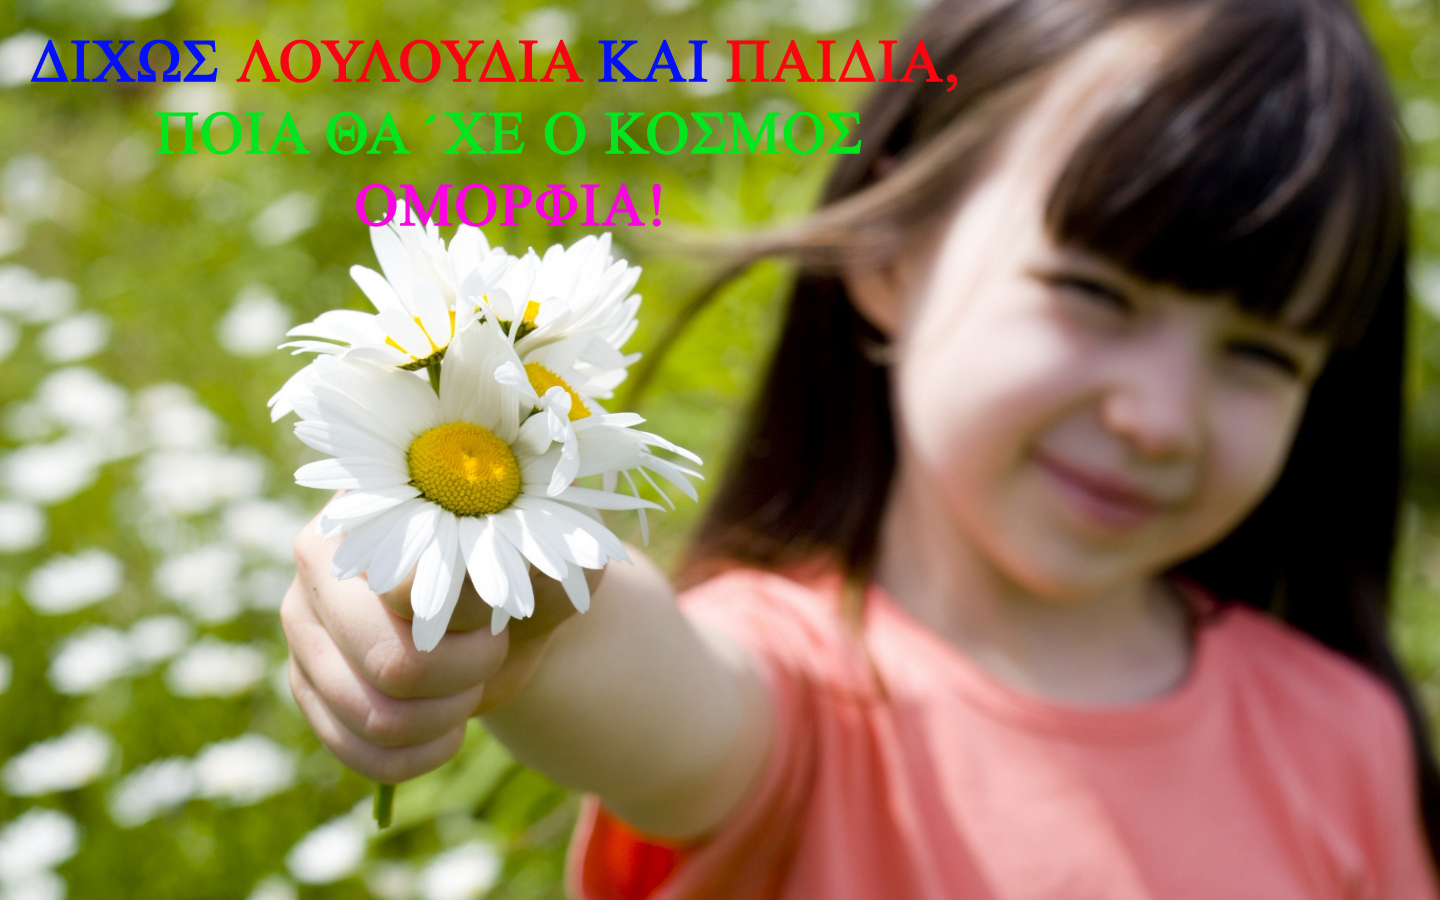 flowers_children_daisy_portrait_romantic_happiness_white_flowers_little_girl_5000x3333_wallpaper_High